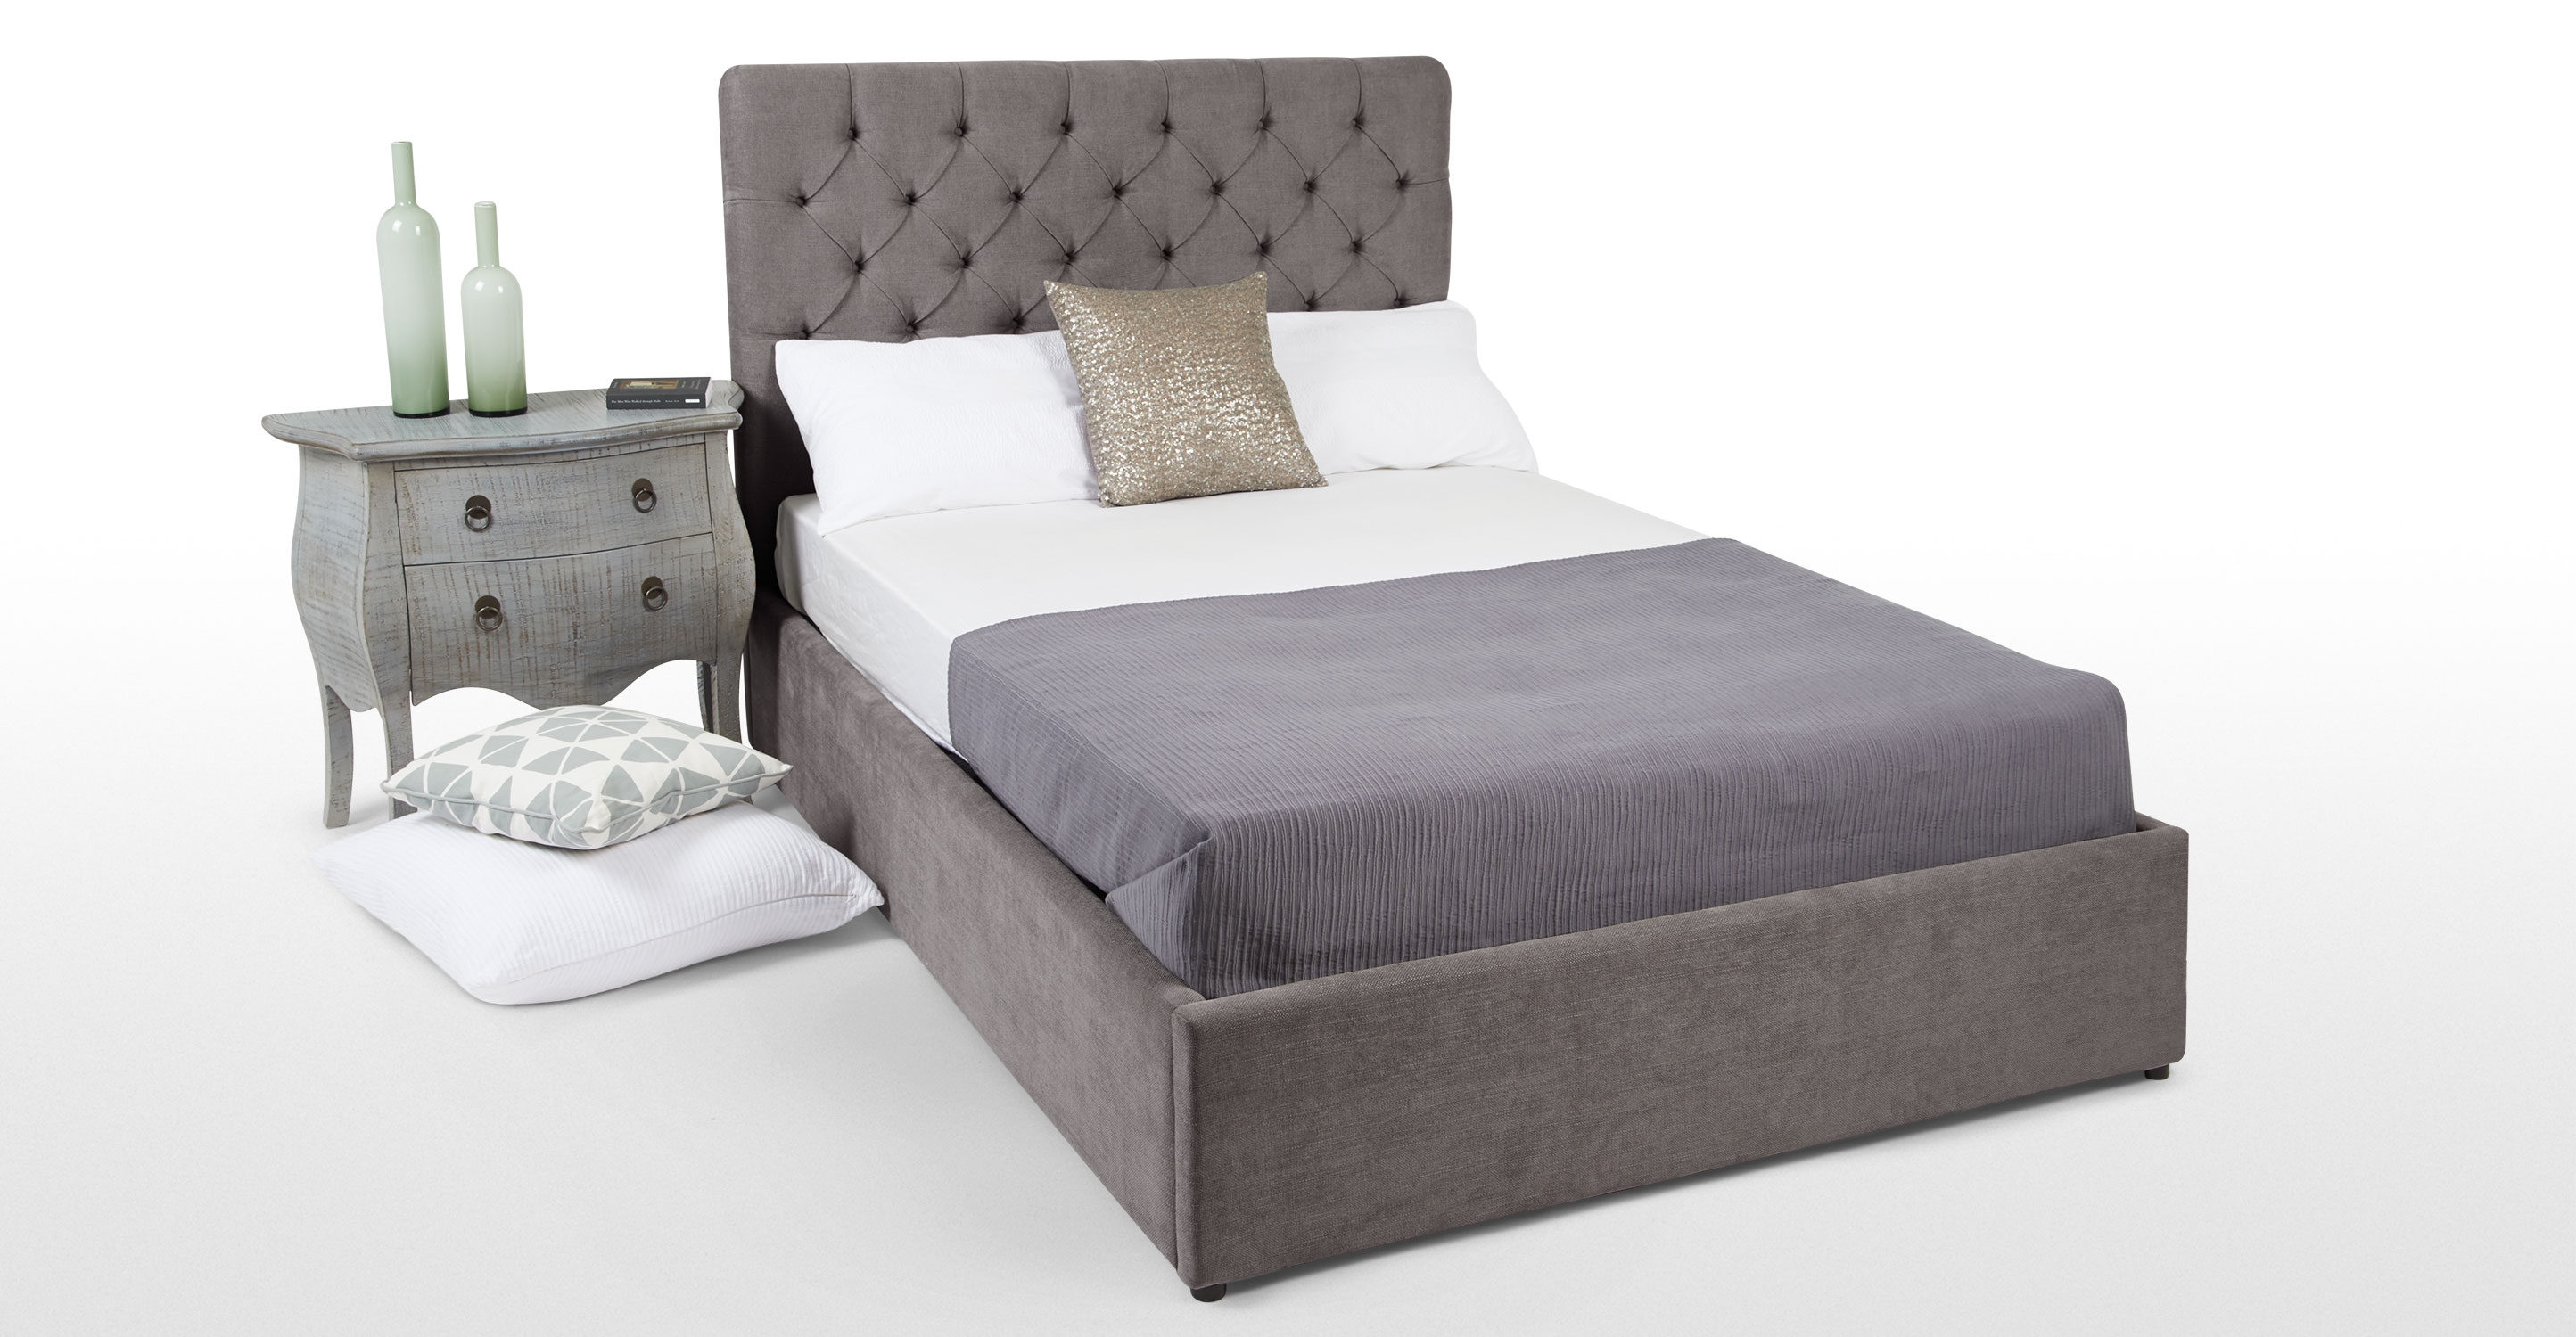 skye un lit king size avec rangement gris tain. Black Bedroom Furniture Sets. Home Design Ideas